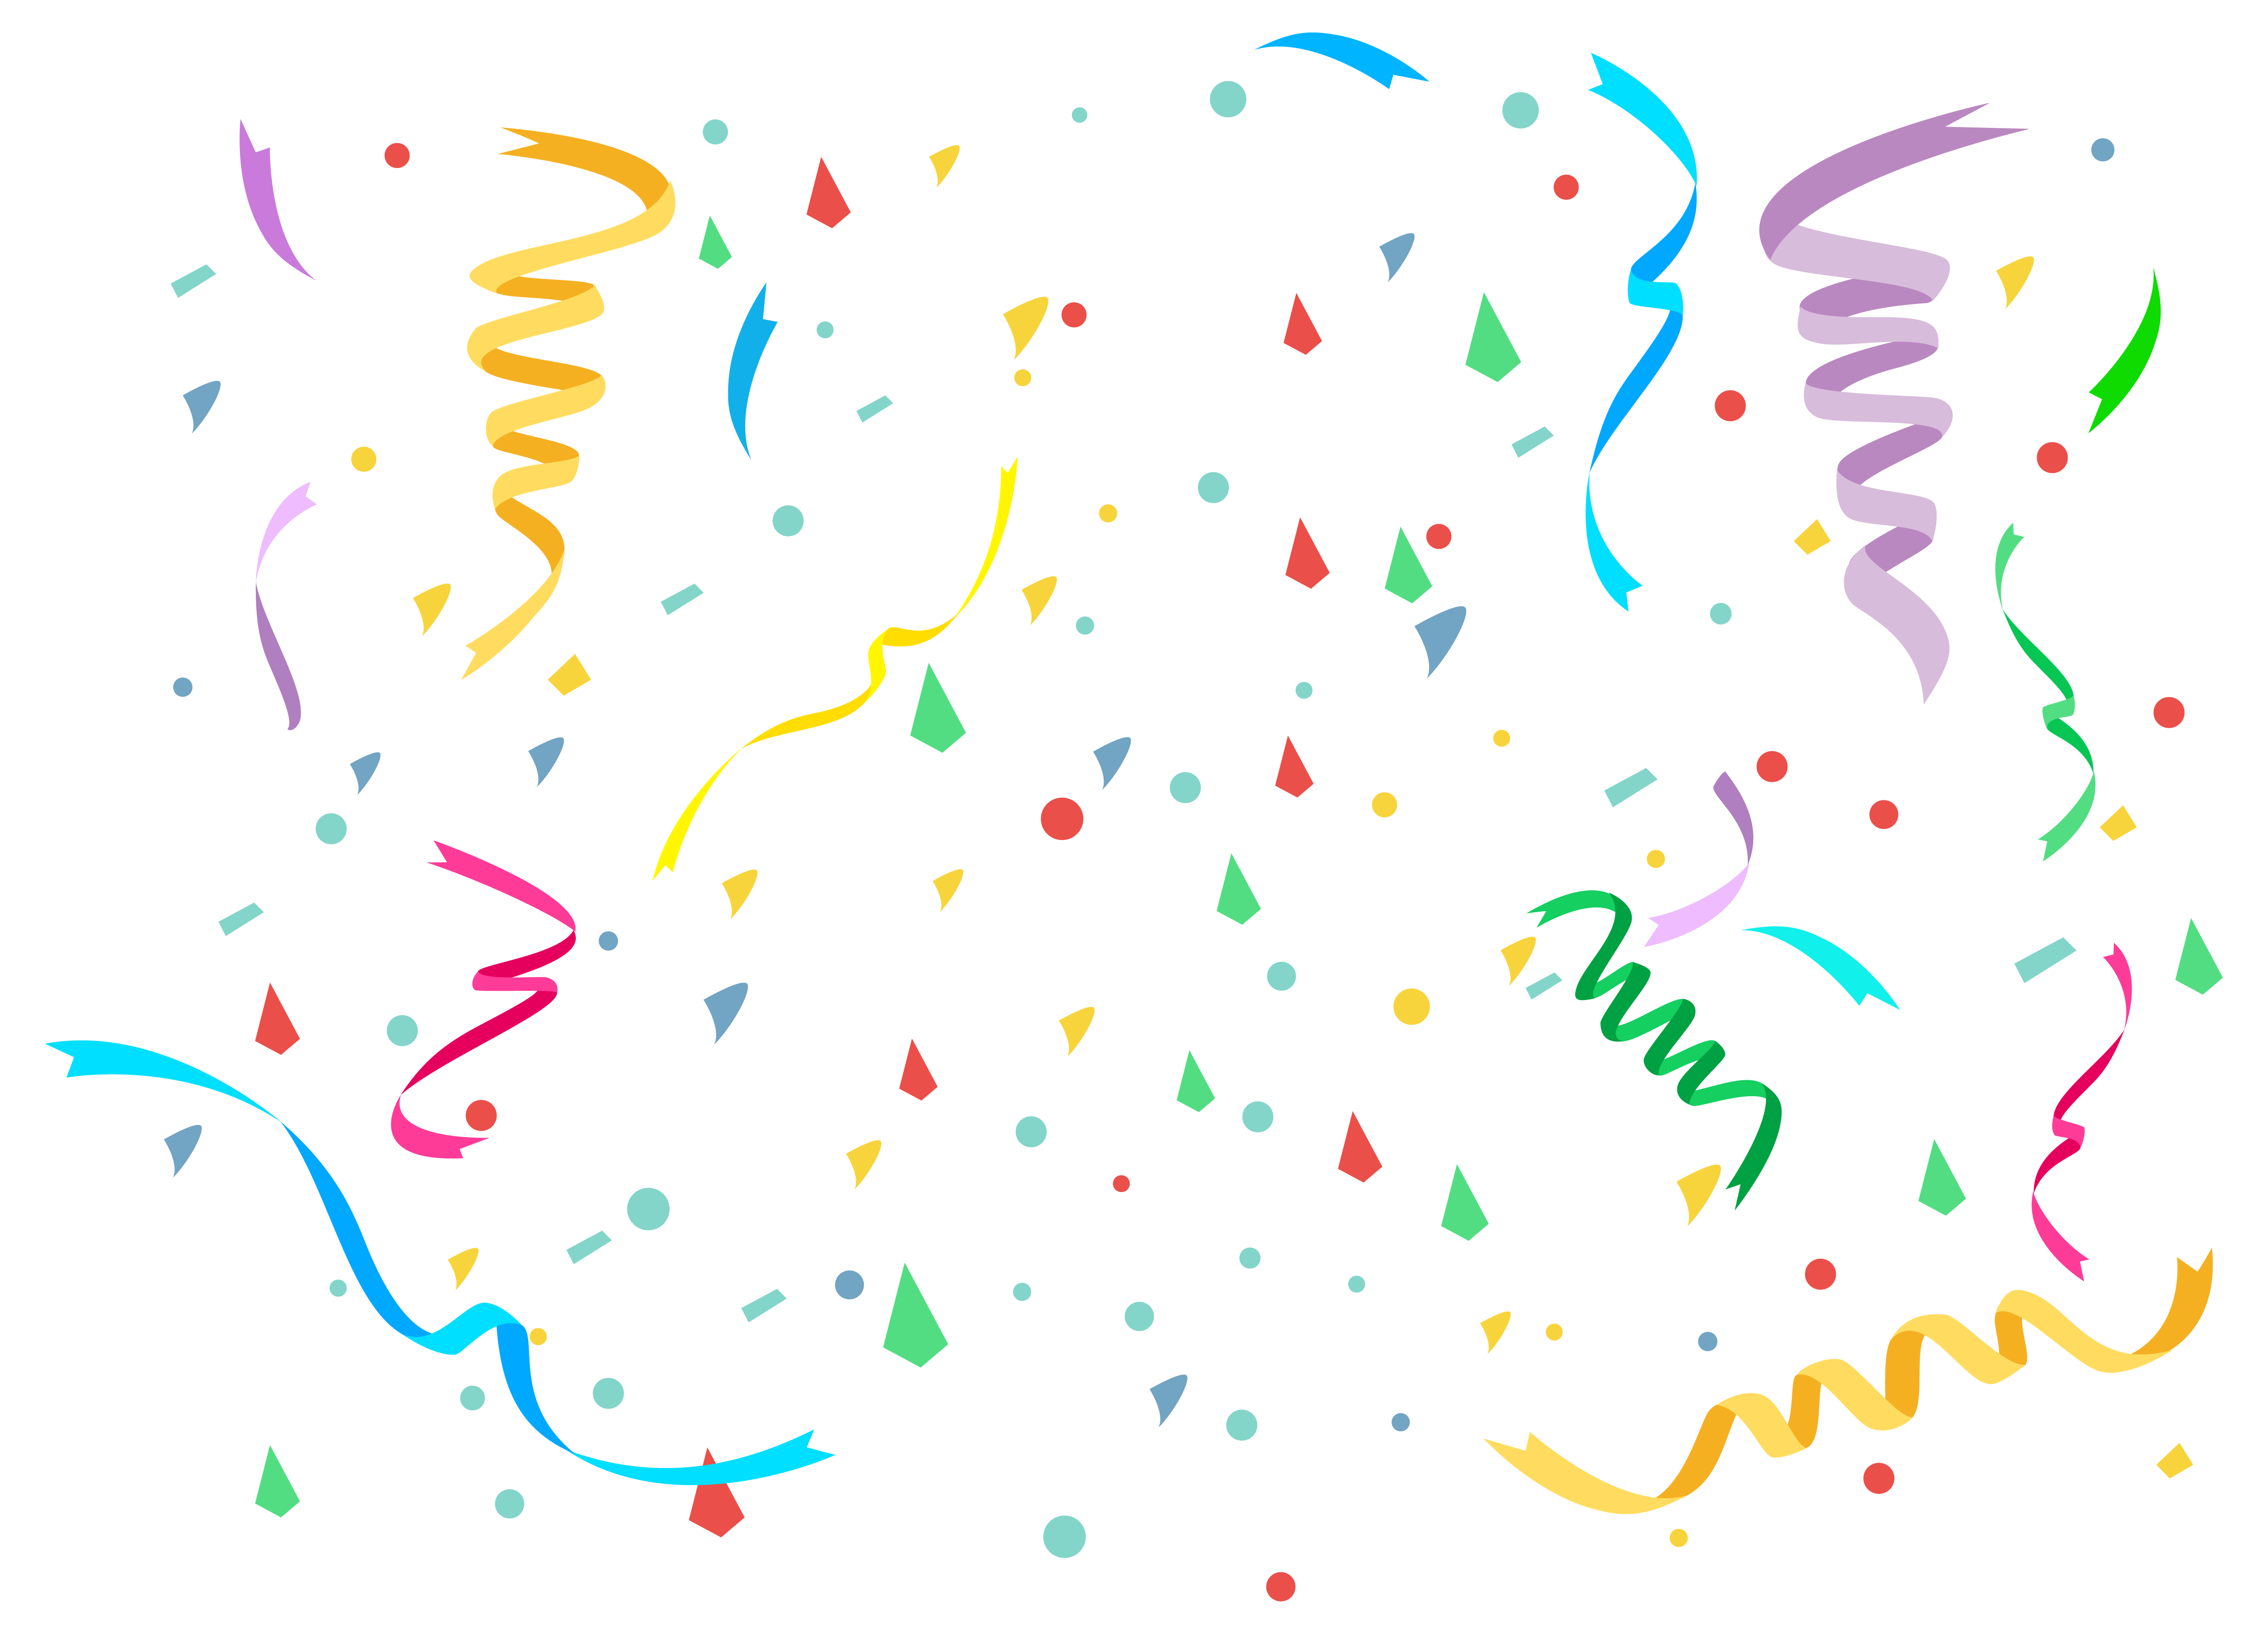 24 earphone png free cliparts that you can download to you computer - Confetti Png Picture Png Image